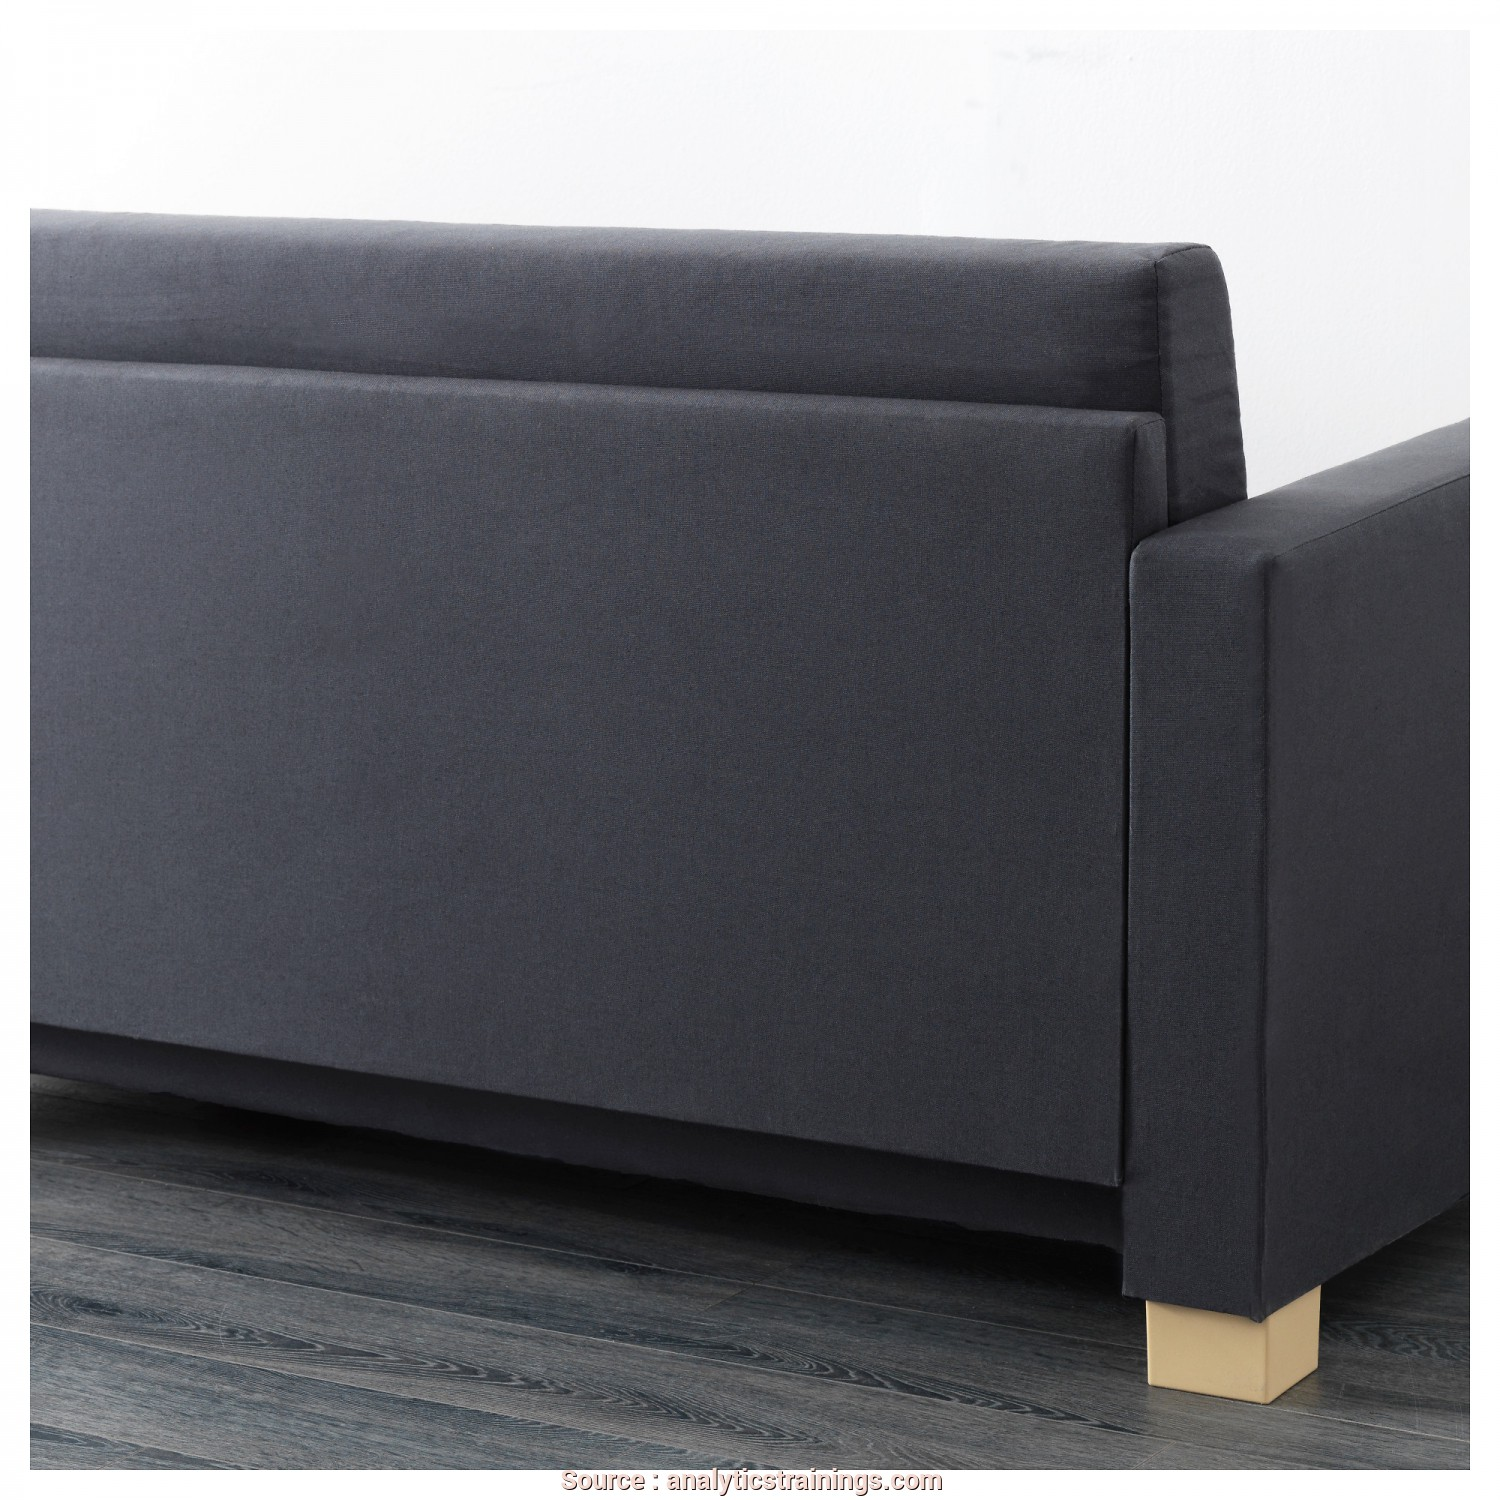 How To Fold Ikea Futon, Incredibile Furniture: Surprising Sofa, Ikea Design, Comfort Furniture